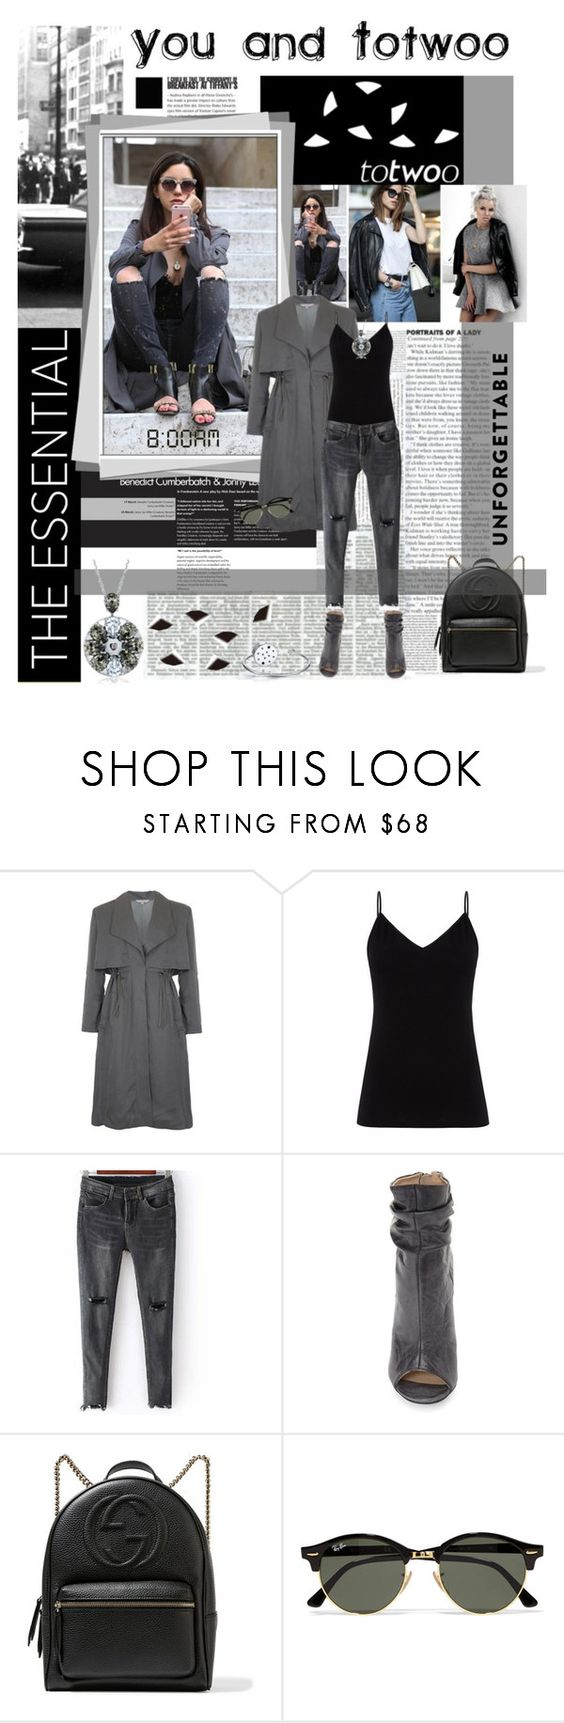 """""""You and Totwoo"""" by lacas ❤ liked on Polyvore featuring French Connection, Diane Von Furstenberg, Kristin Cavallari, Gucci, Ray-Ban, WearableTech, totwoo and smartjewelry"""